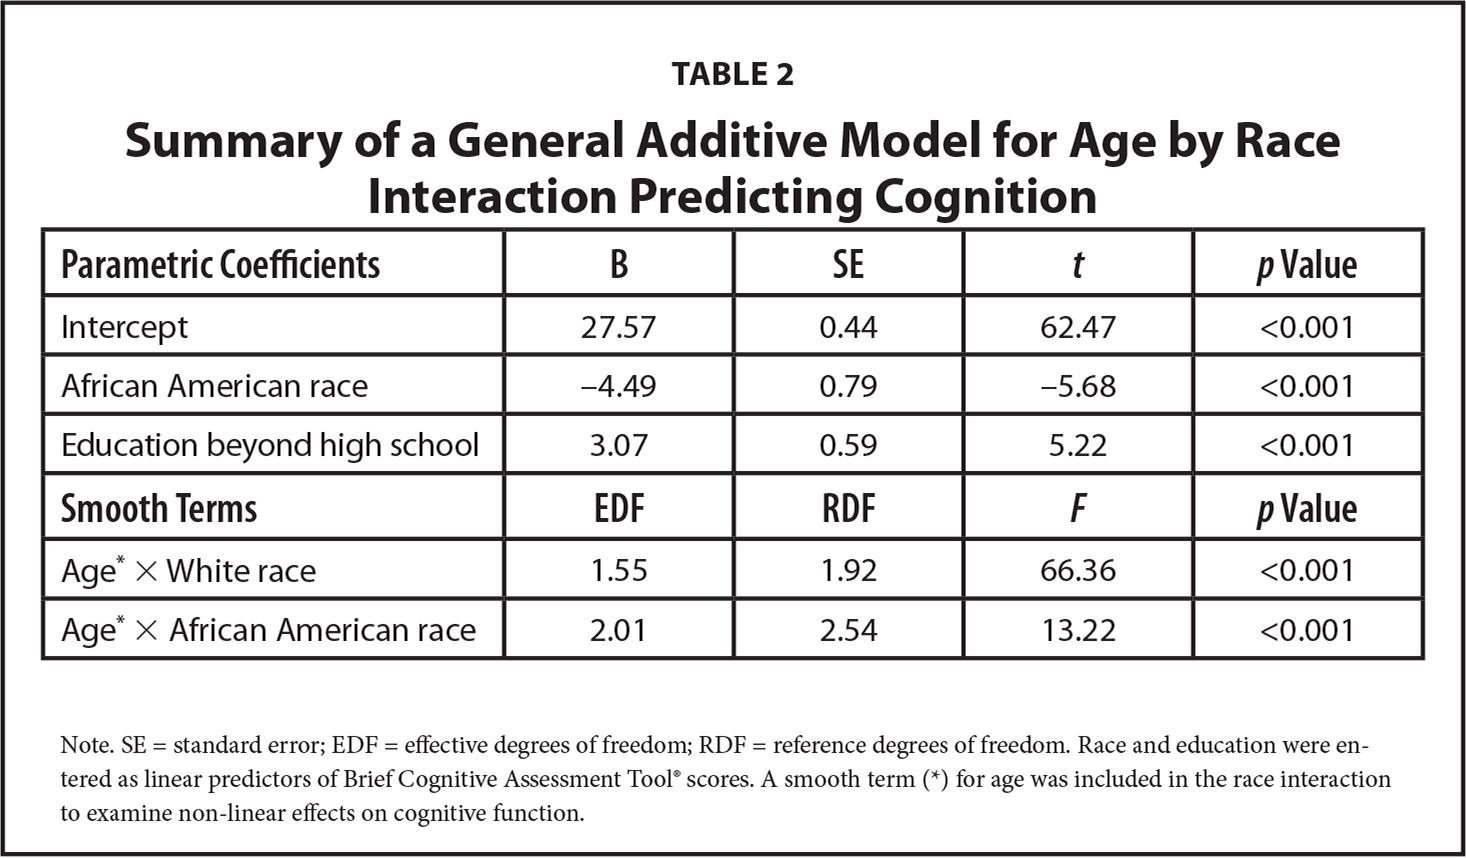 Summary of a General Additive Model for Age by Race Interaction Predicting Cognition